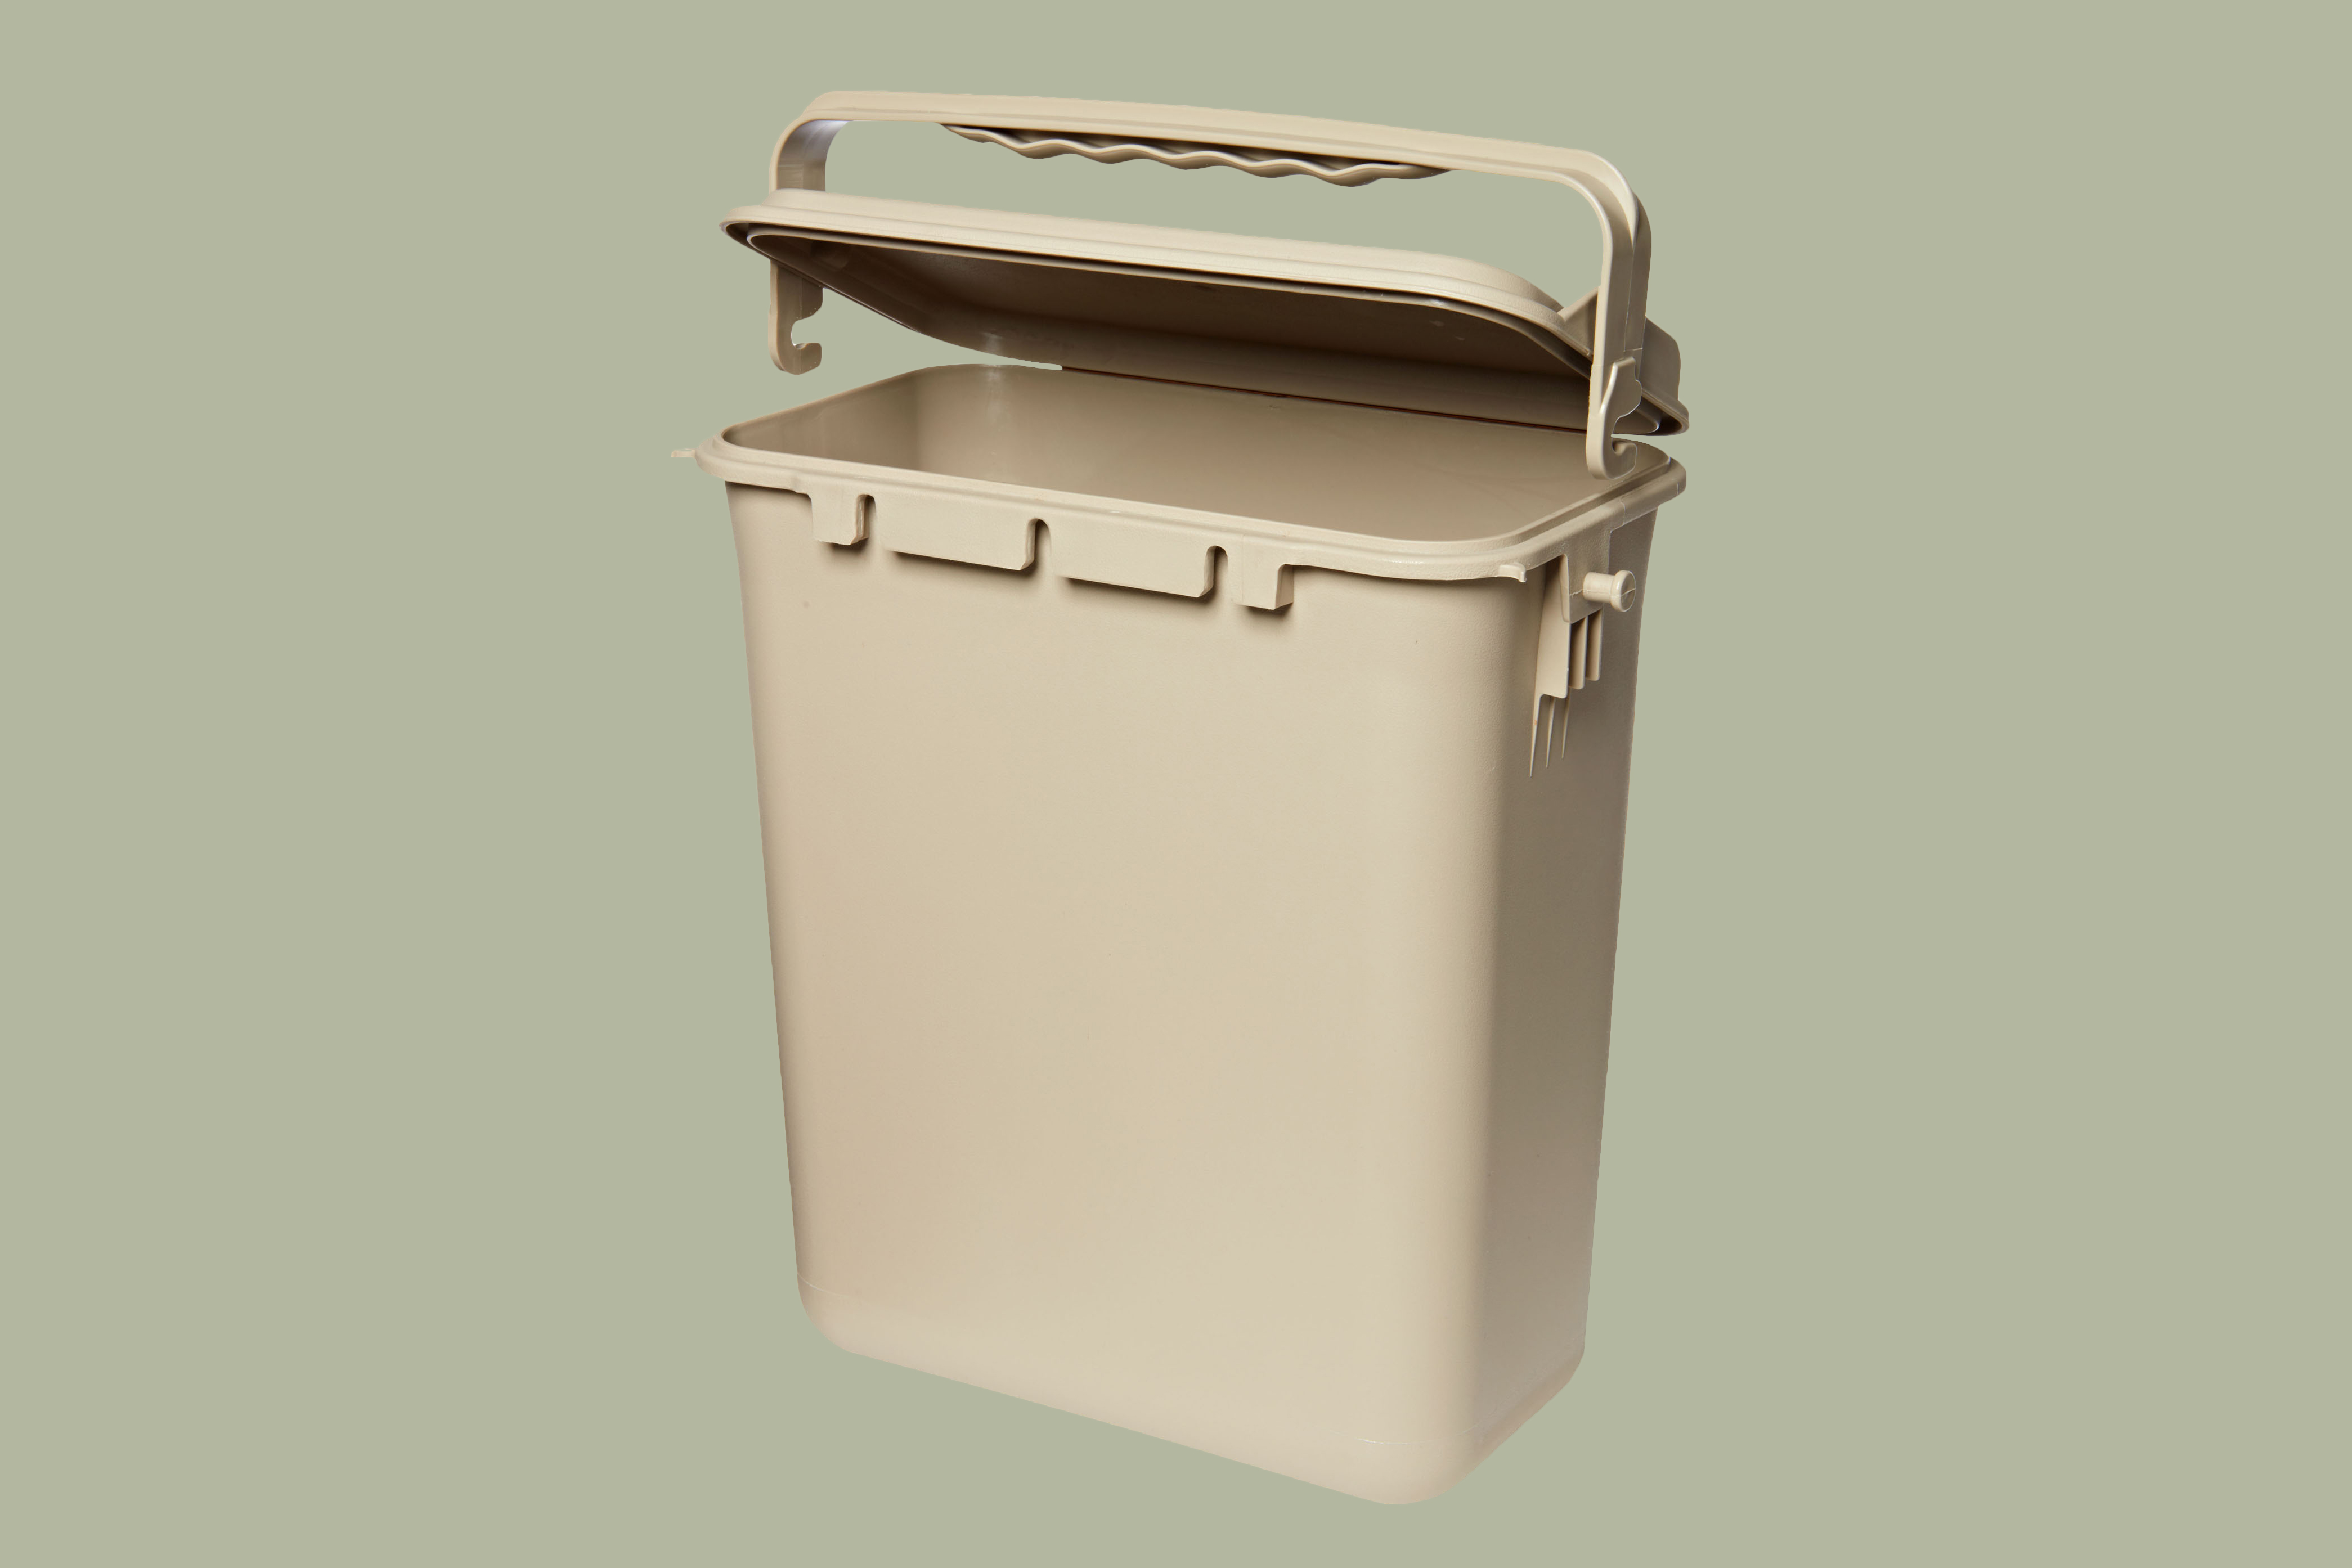 YukChuk Under-Counter Kitchen Compost Bin